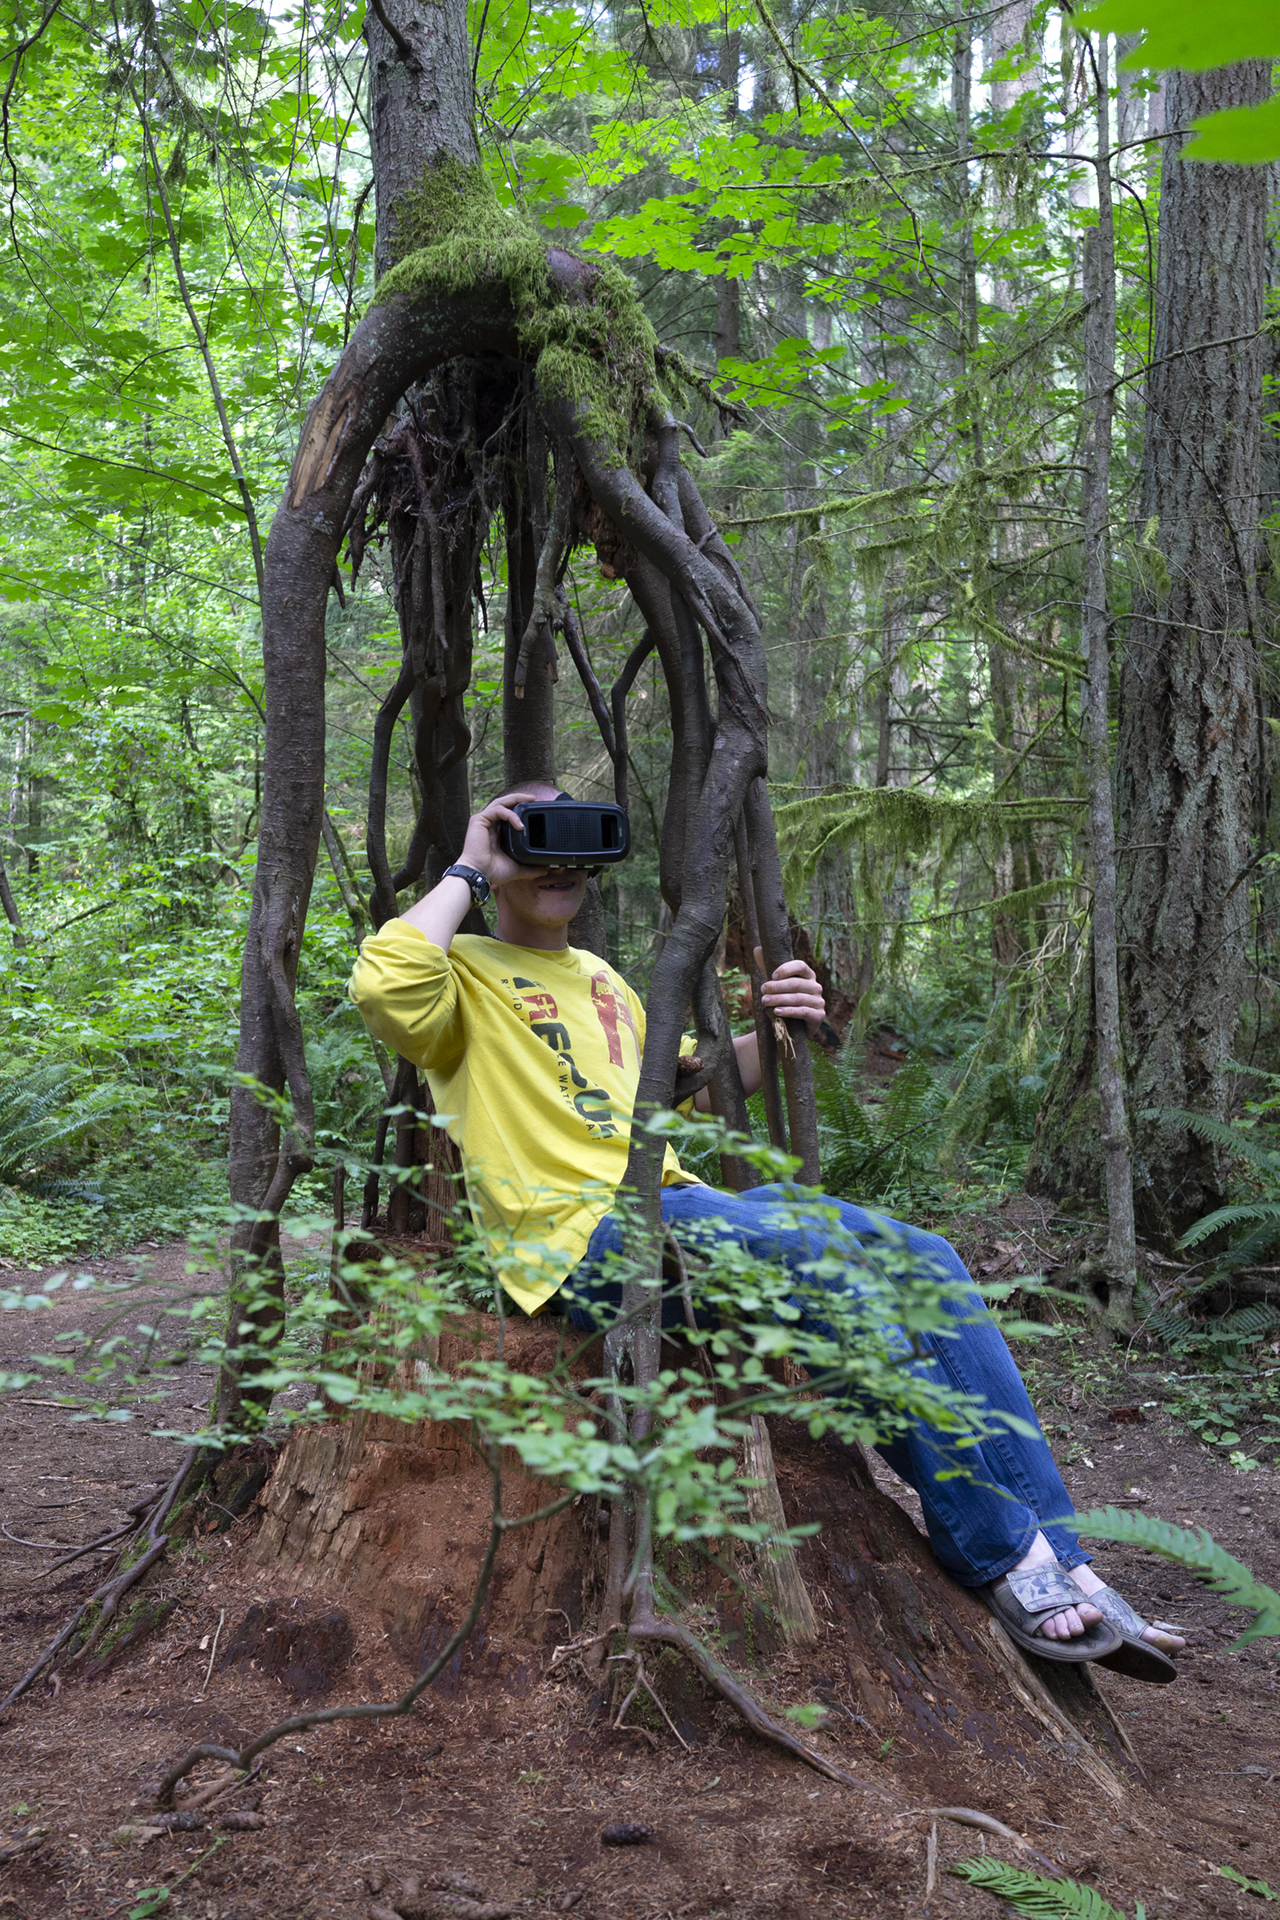 Susan Robb, Pilot program to engage young people through art and nature,